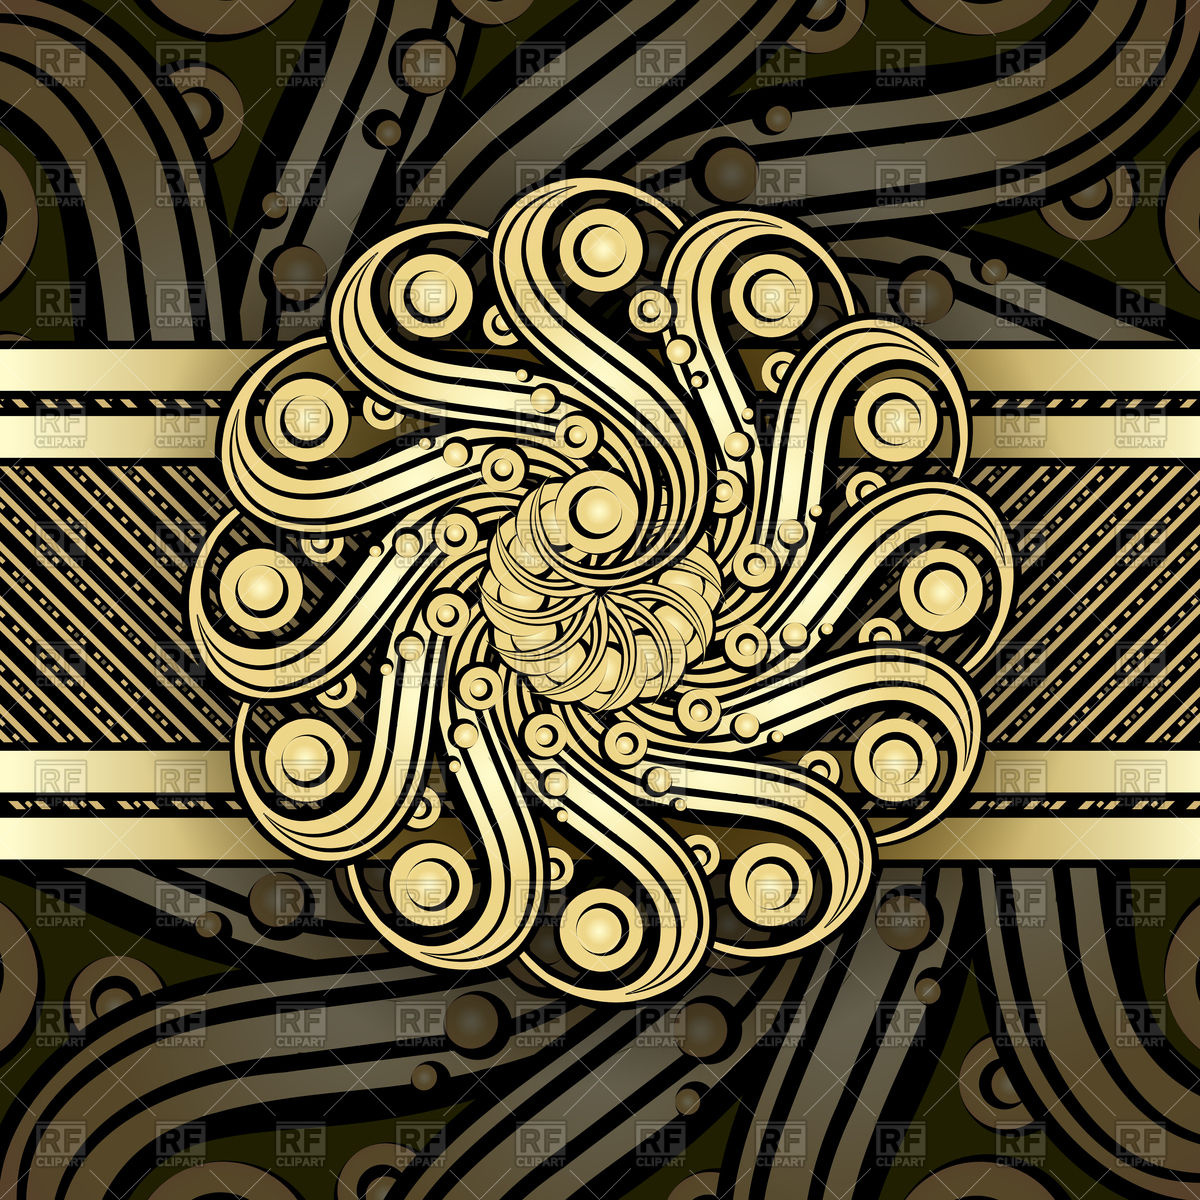 1200x1200 Steampunk Background With Metallic Swirl Elements Vector Image